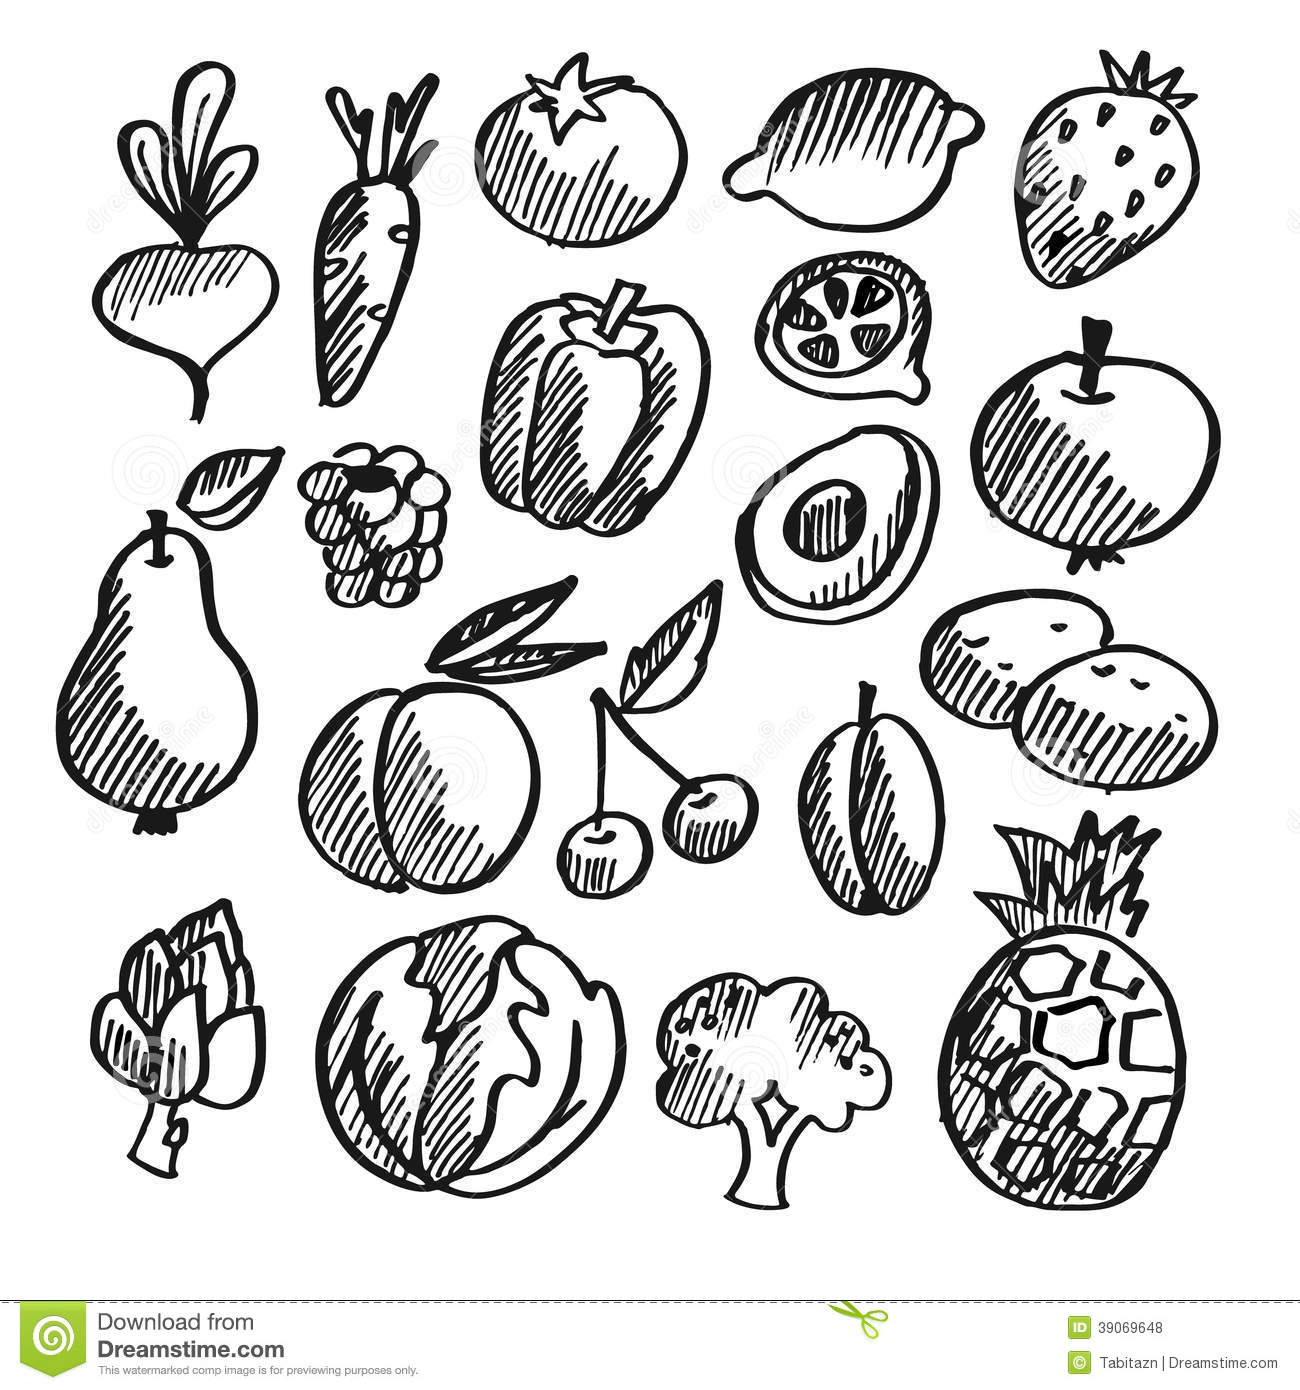 pin Fruits u0026 Vegetables clipart sketch #2 - PNG Vegetables And Fruits Black And White